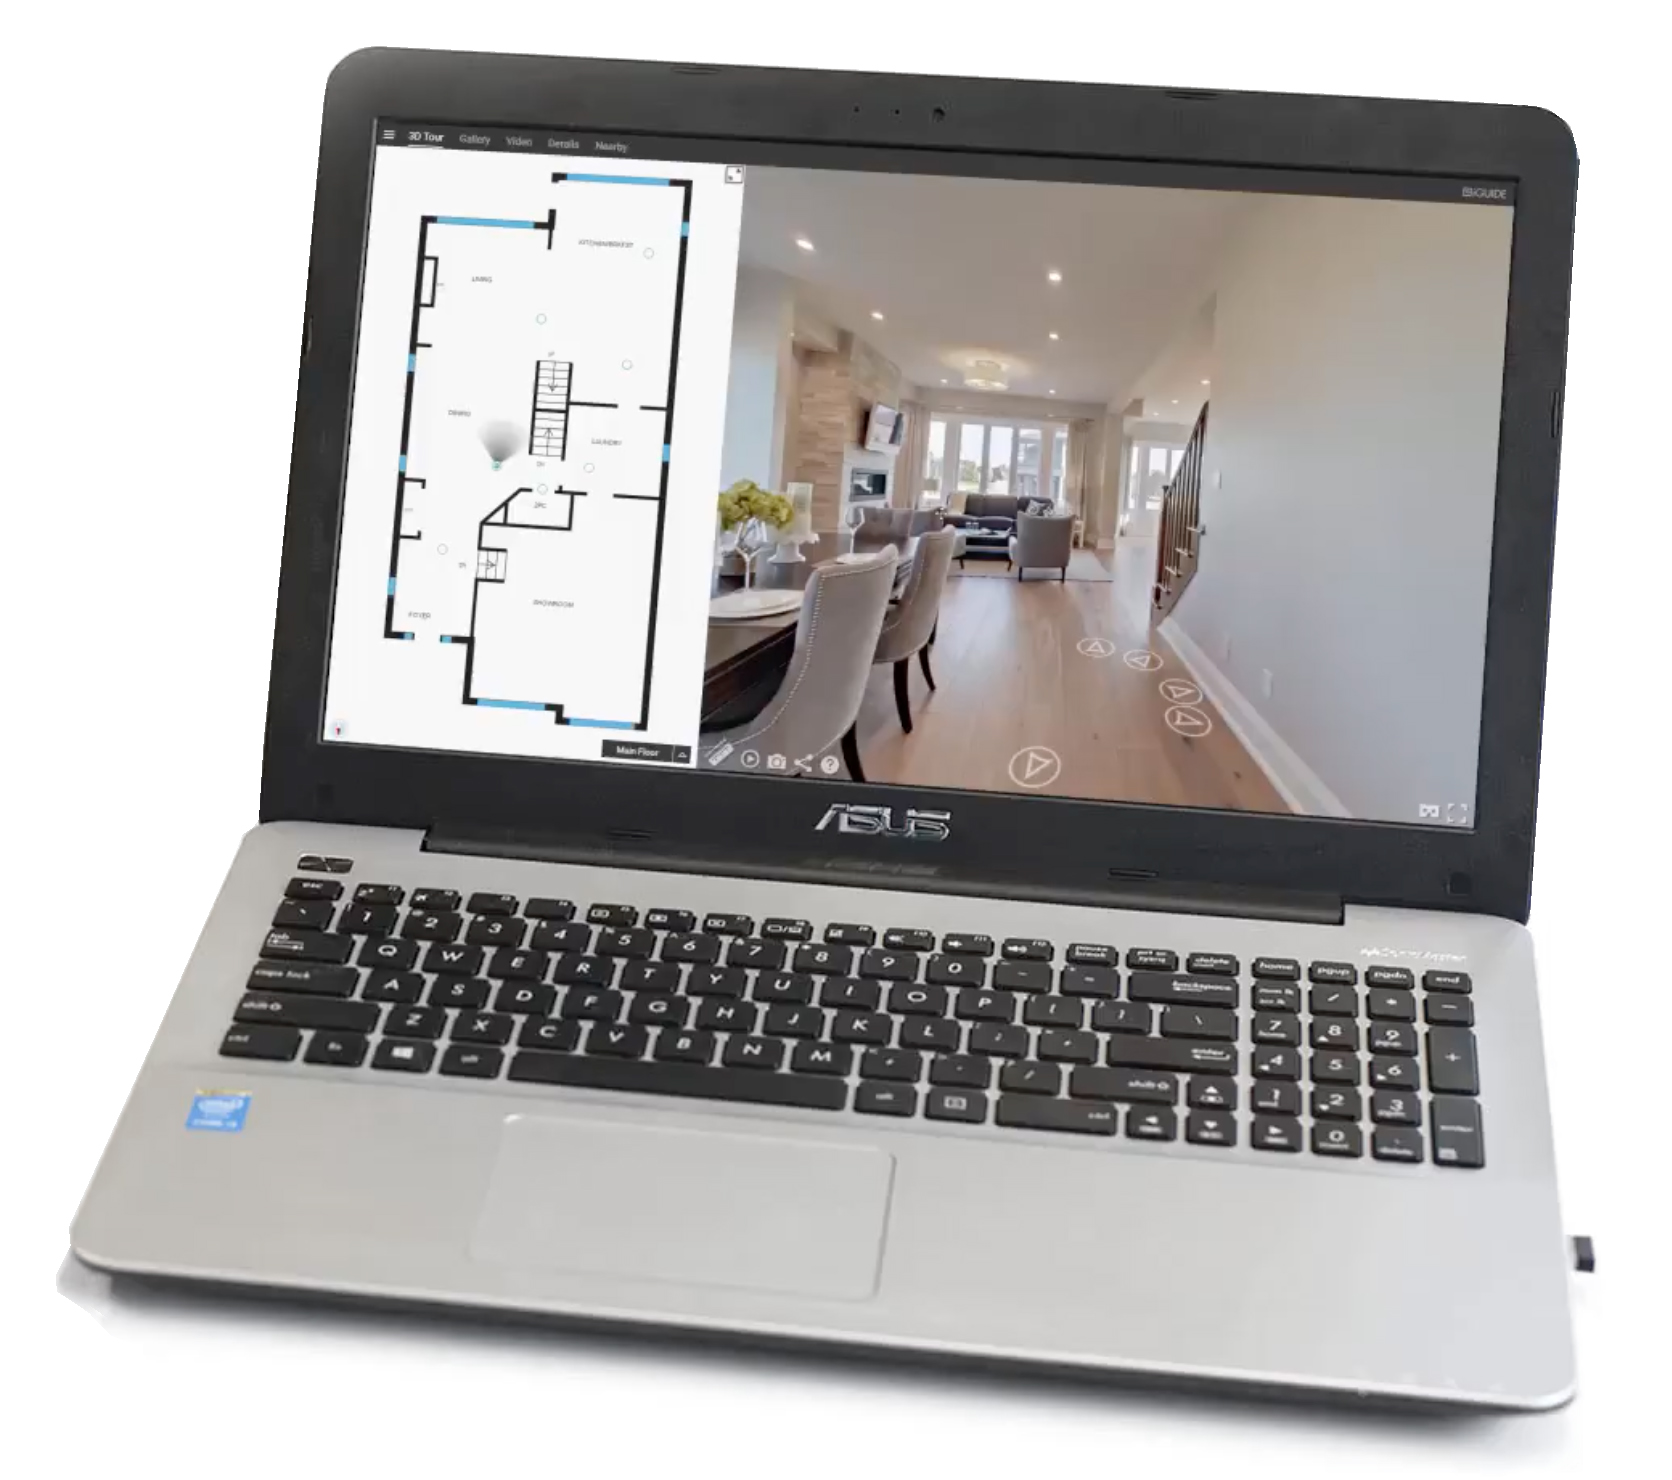 The ultimate 3D listing tool. - With iGuide virtual home tours, buyers don't just see a home, they see themselves living there. Our 3D virtual home tours open listings to a limitless number of buyers from anywhere in the world. iGuide lets you experience the property down to the smallest detail, with the clarity of stepping through the front door.